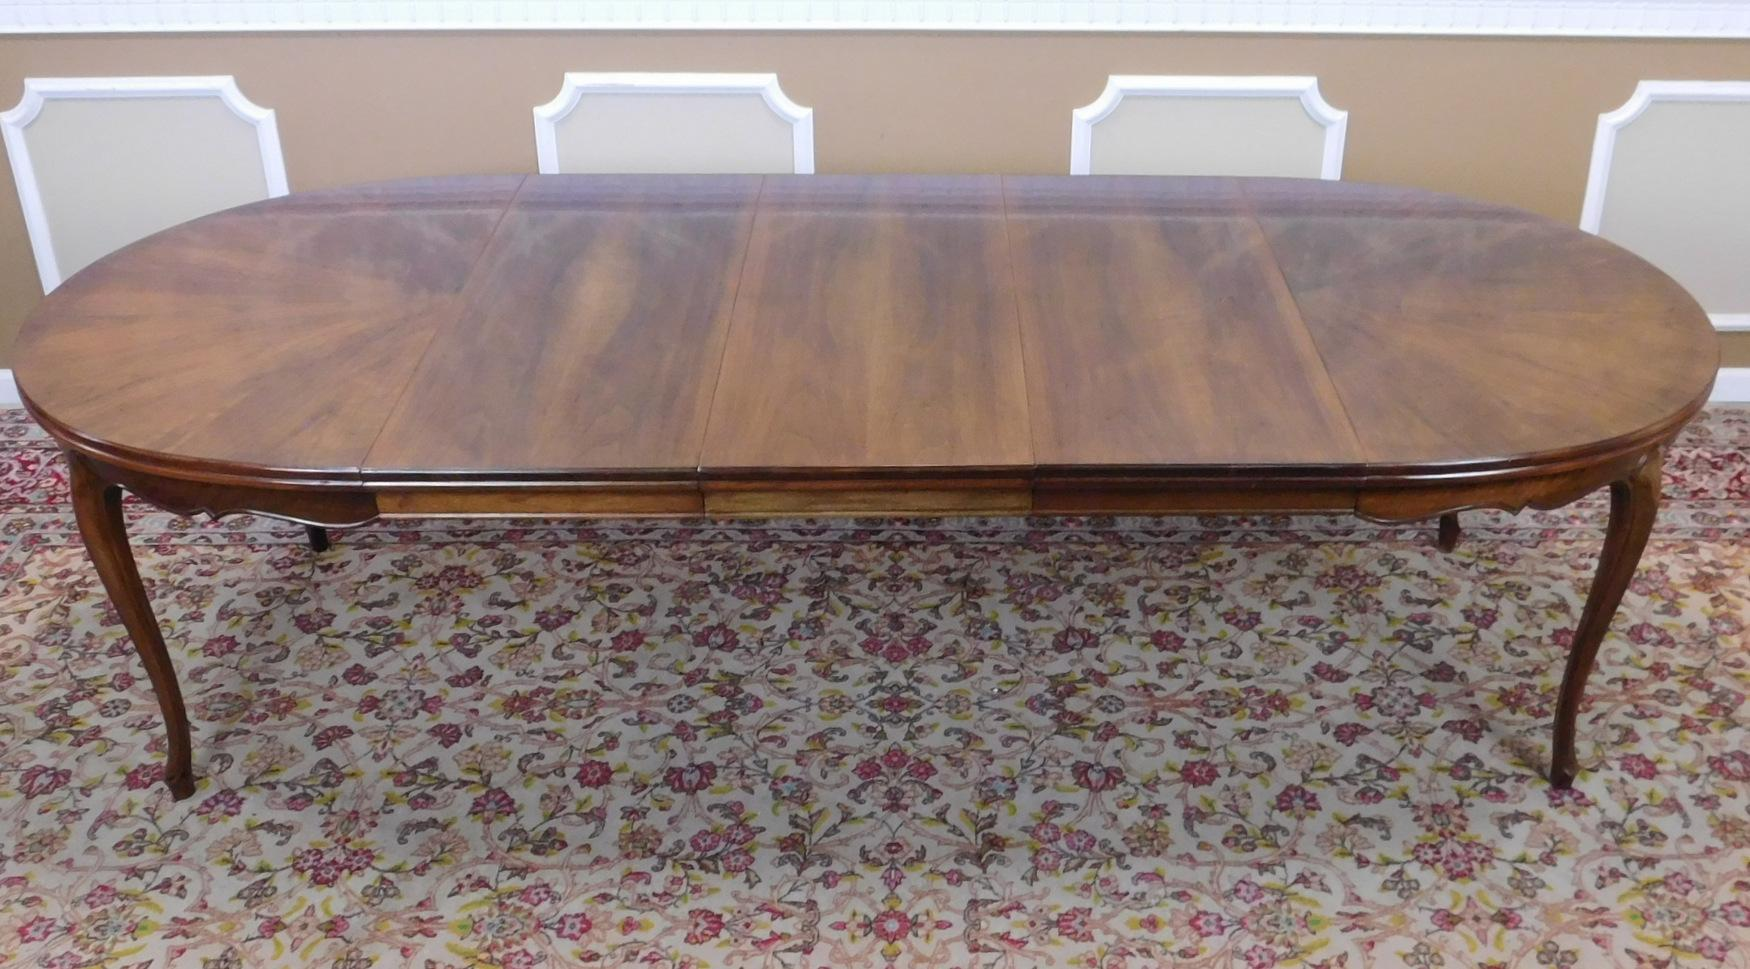 Baker Furniture Dining Table Gallery Dining Table Ideas : Chatsworthx2003707L from sorahana.info size 1750 x 969 jpeg 211kB